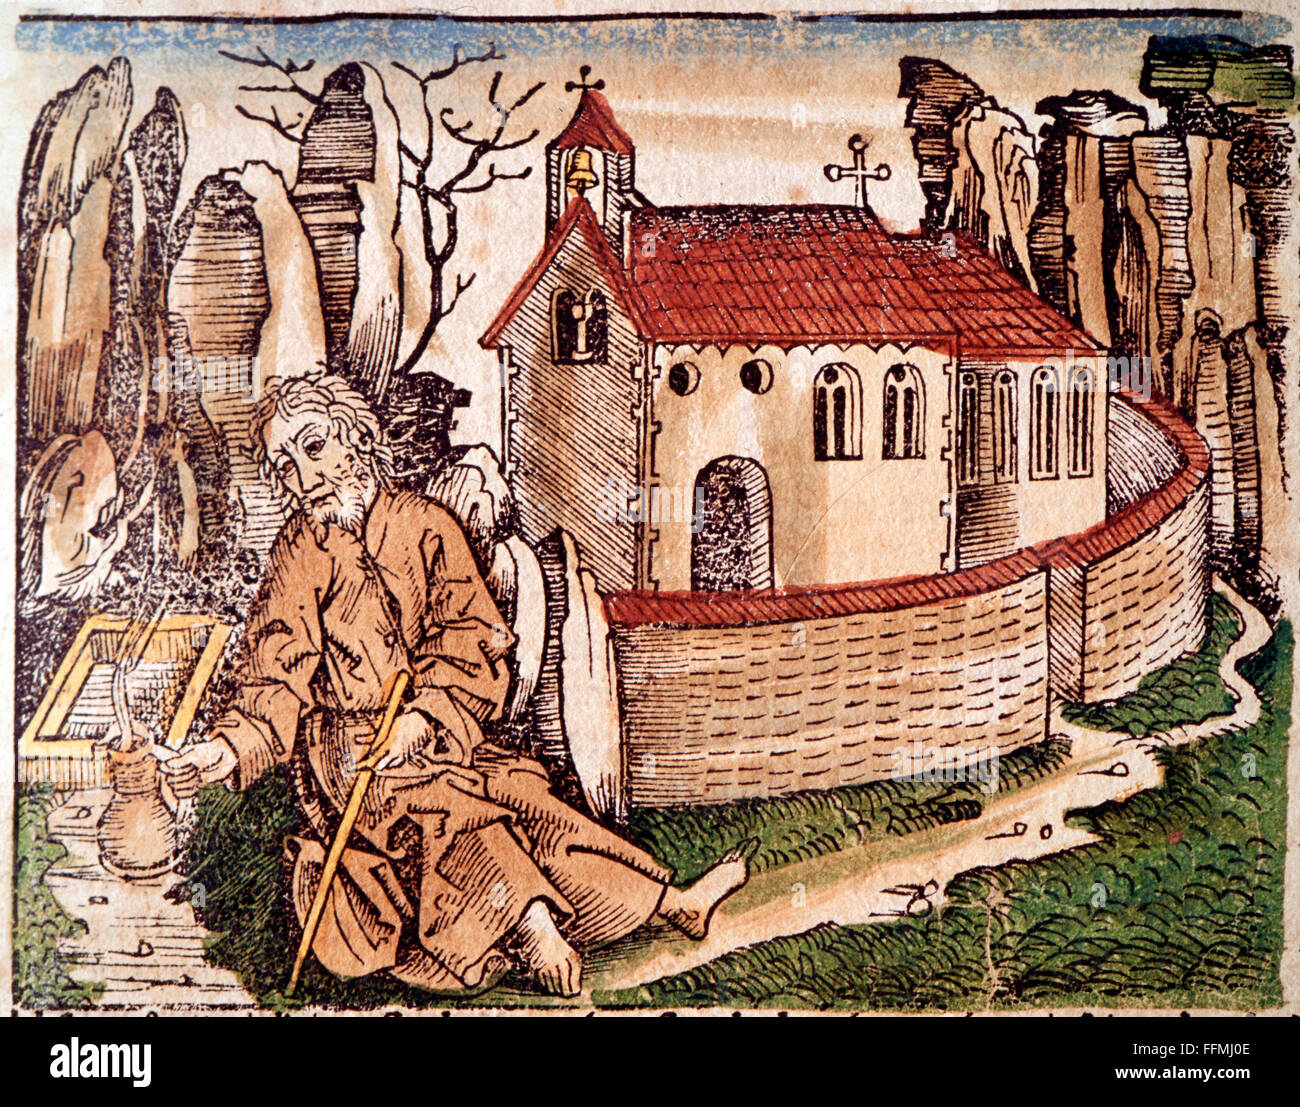 Nicholas of Flue, 1417 - 21.3.1487, Swiss hermit, ascetic, mystic, Saint, sitting in front of chapel, colored woodcut - Stock Image